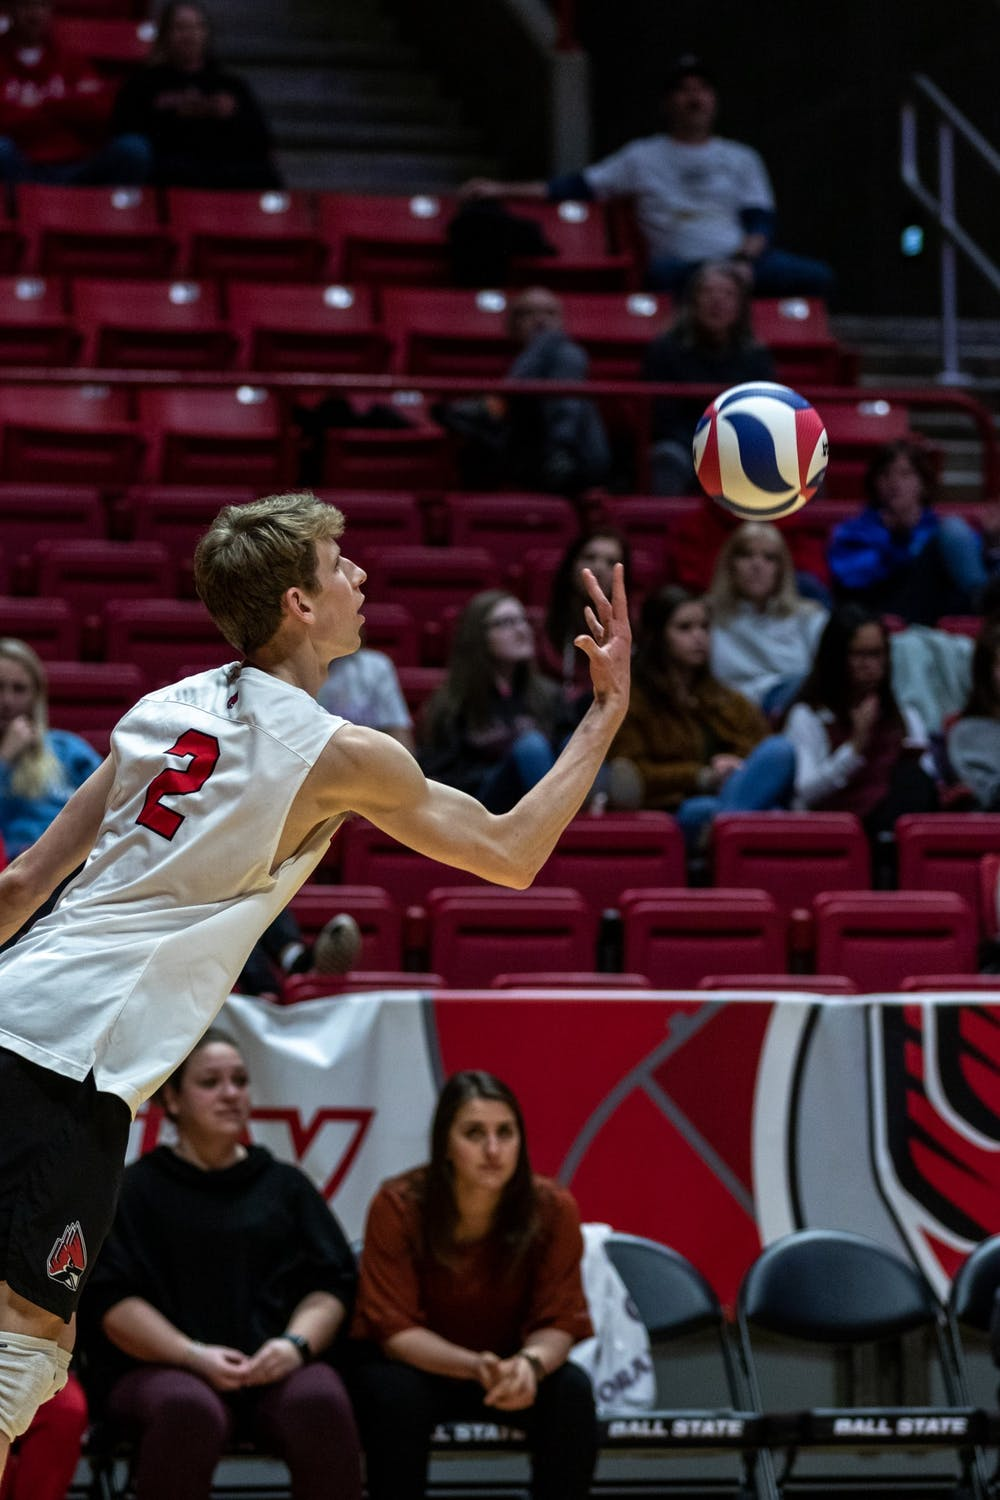 <p>Ball State Sophomore, Kaleb Jenness (2) winds up to serve in the second set of the matchup against Mckendree University Feb. 13, 2020, at John E. Worthen Arena. The Cardinals took down the Bearcats in a tight matchup, 3-1. <strong>Paul Kihn, DN</strong></p>